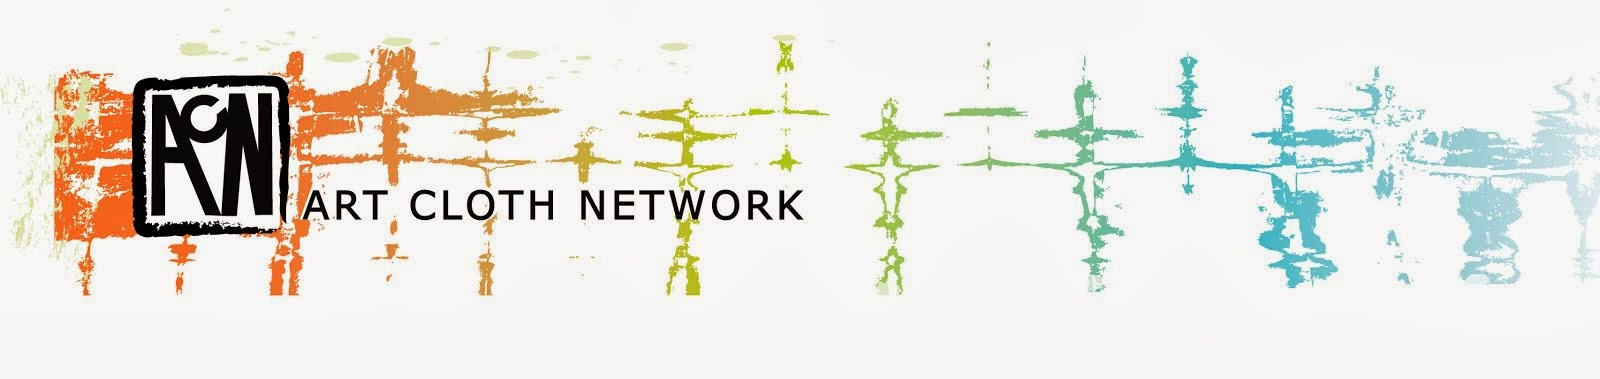 Art Cloth Network